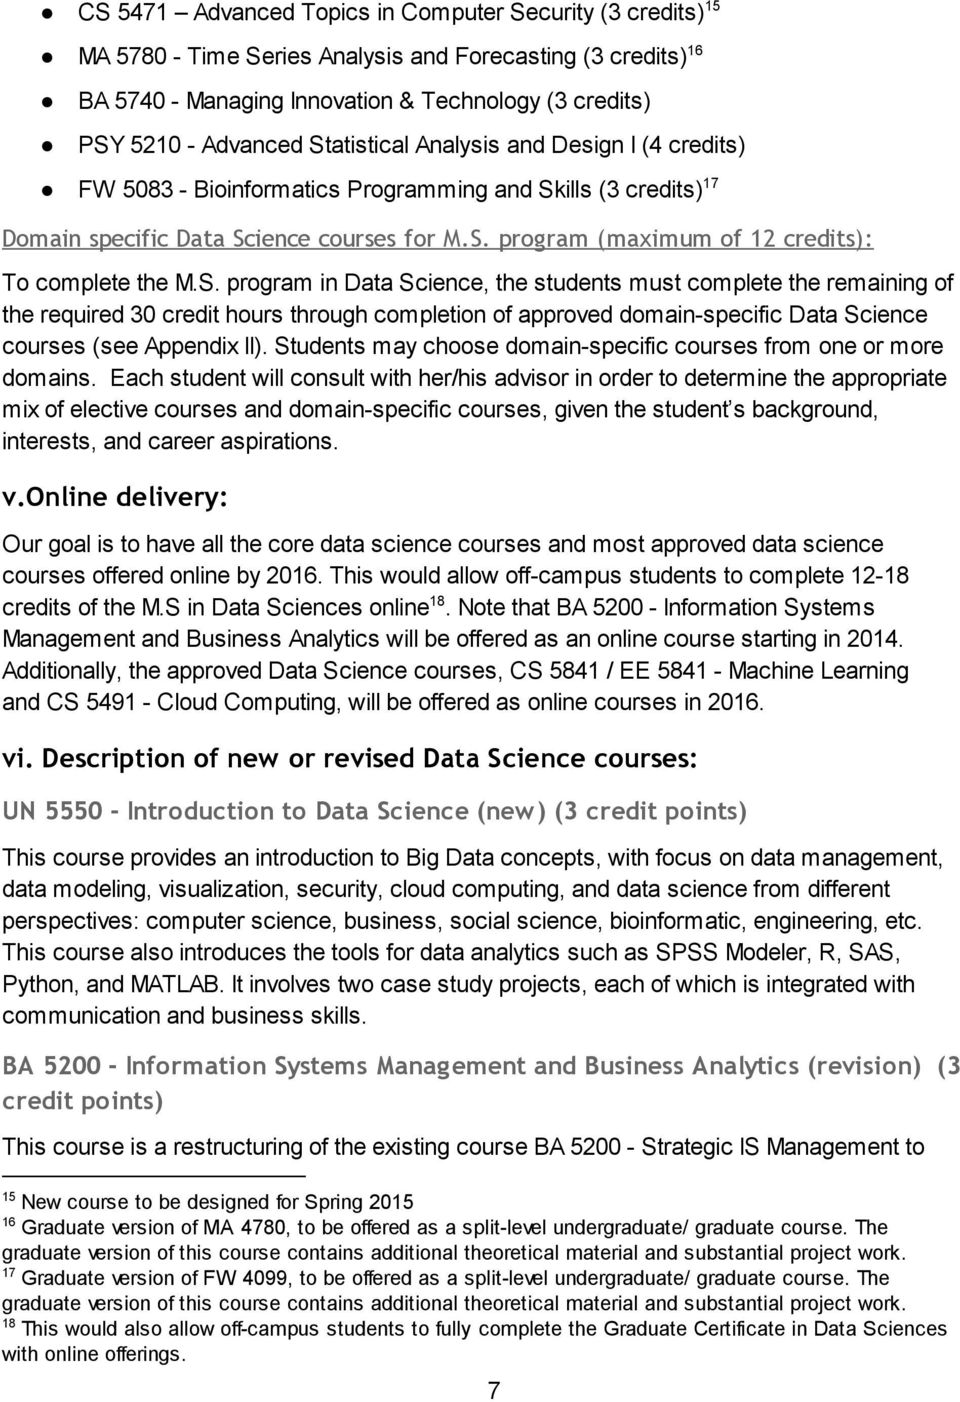 S. program in Data Science, the students must complete the remaining of the required 30 credit hours through completion of approved domain-specific Data Science courses (see Appendix II).